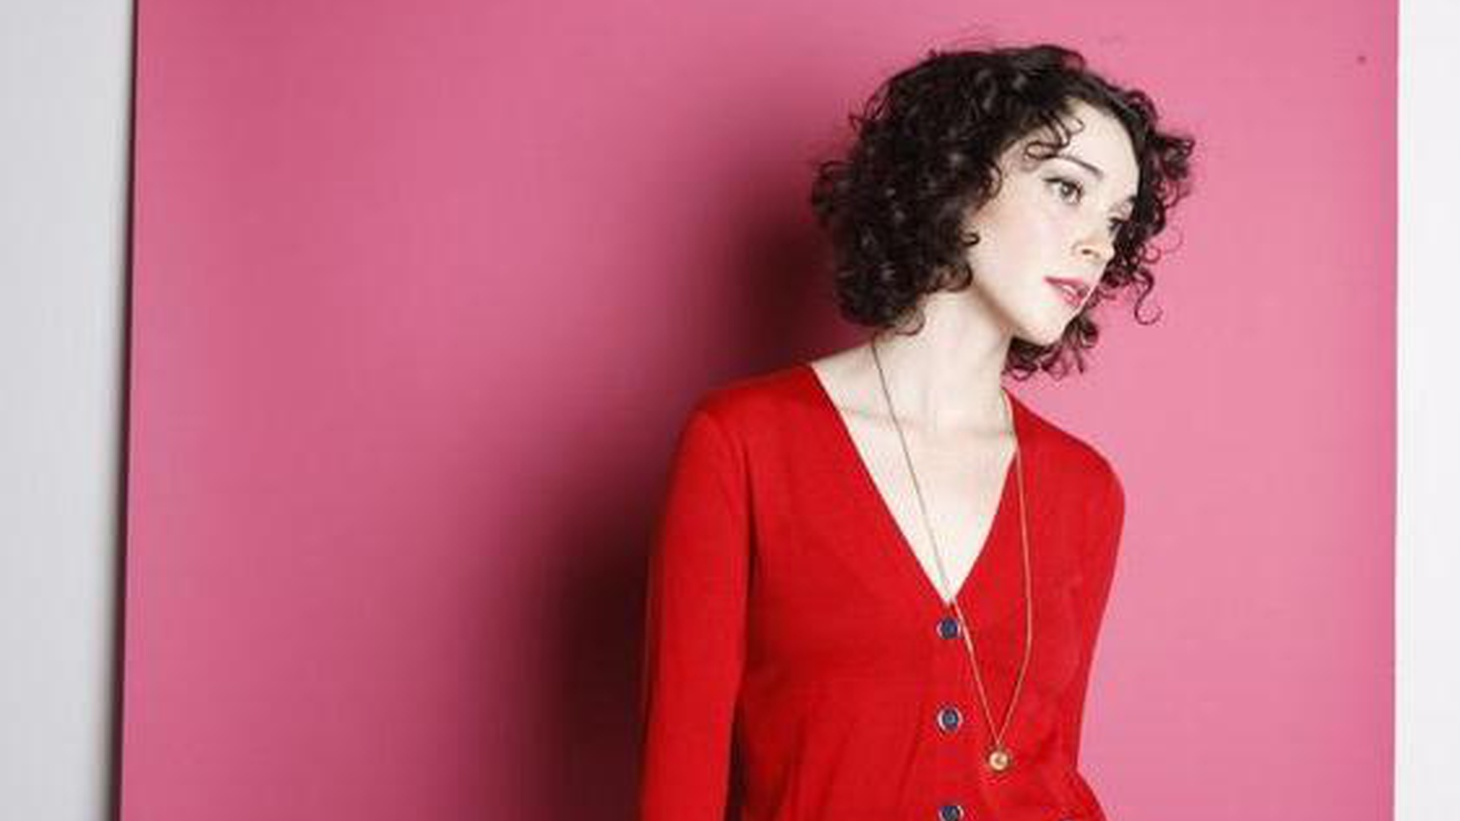 The Angelic sound of St. Vincent emanates from Annie Clark, a musician who lent her musical skills to the Polyphonic Spree and Sufjan Stevens before composing her own intricate pop songs.